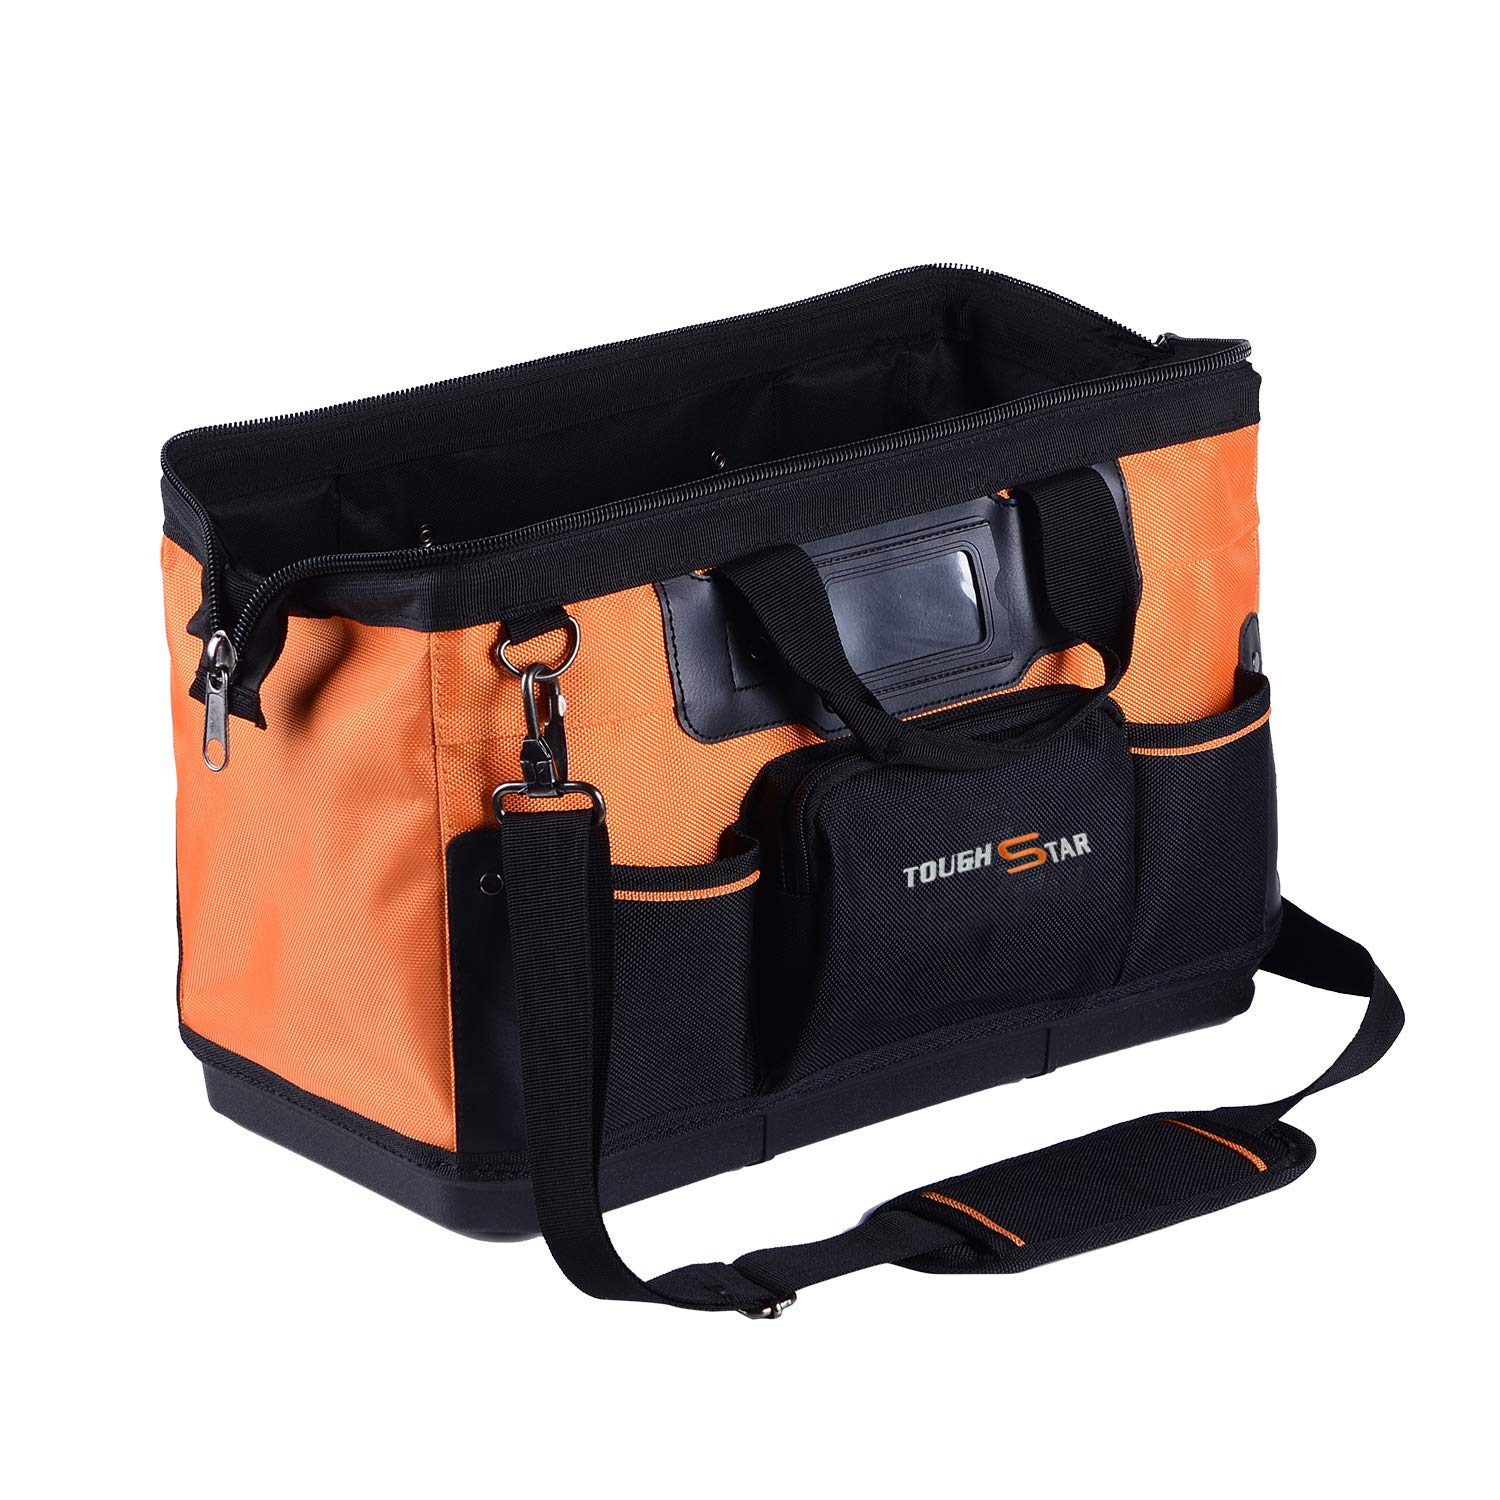 16 Inch 16 Pockets Wide Mouth Single-Shoulder Tool Bag Water Proof Ultra-Rigid Base Tool Storage and Organizer Bag by Sonyabecca (Image #6)